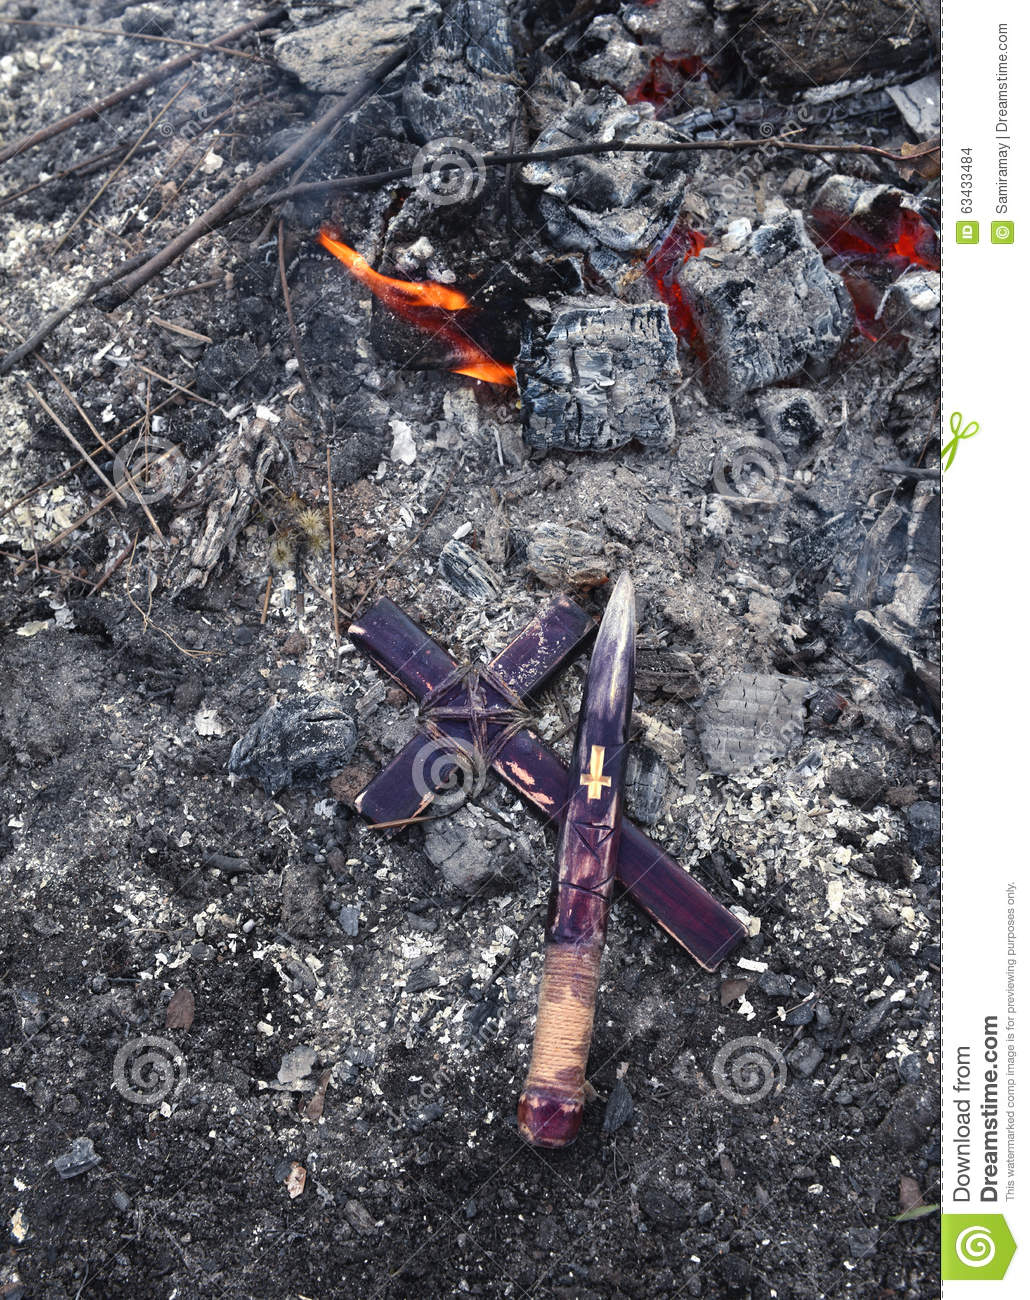 Wooden Stake And Cross By Fire, Vampire Theme Stock Photo - Image of